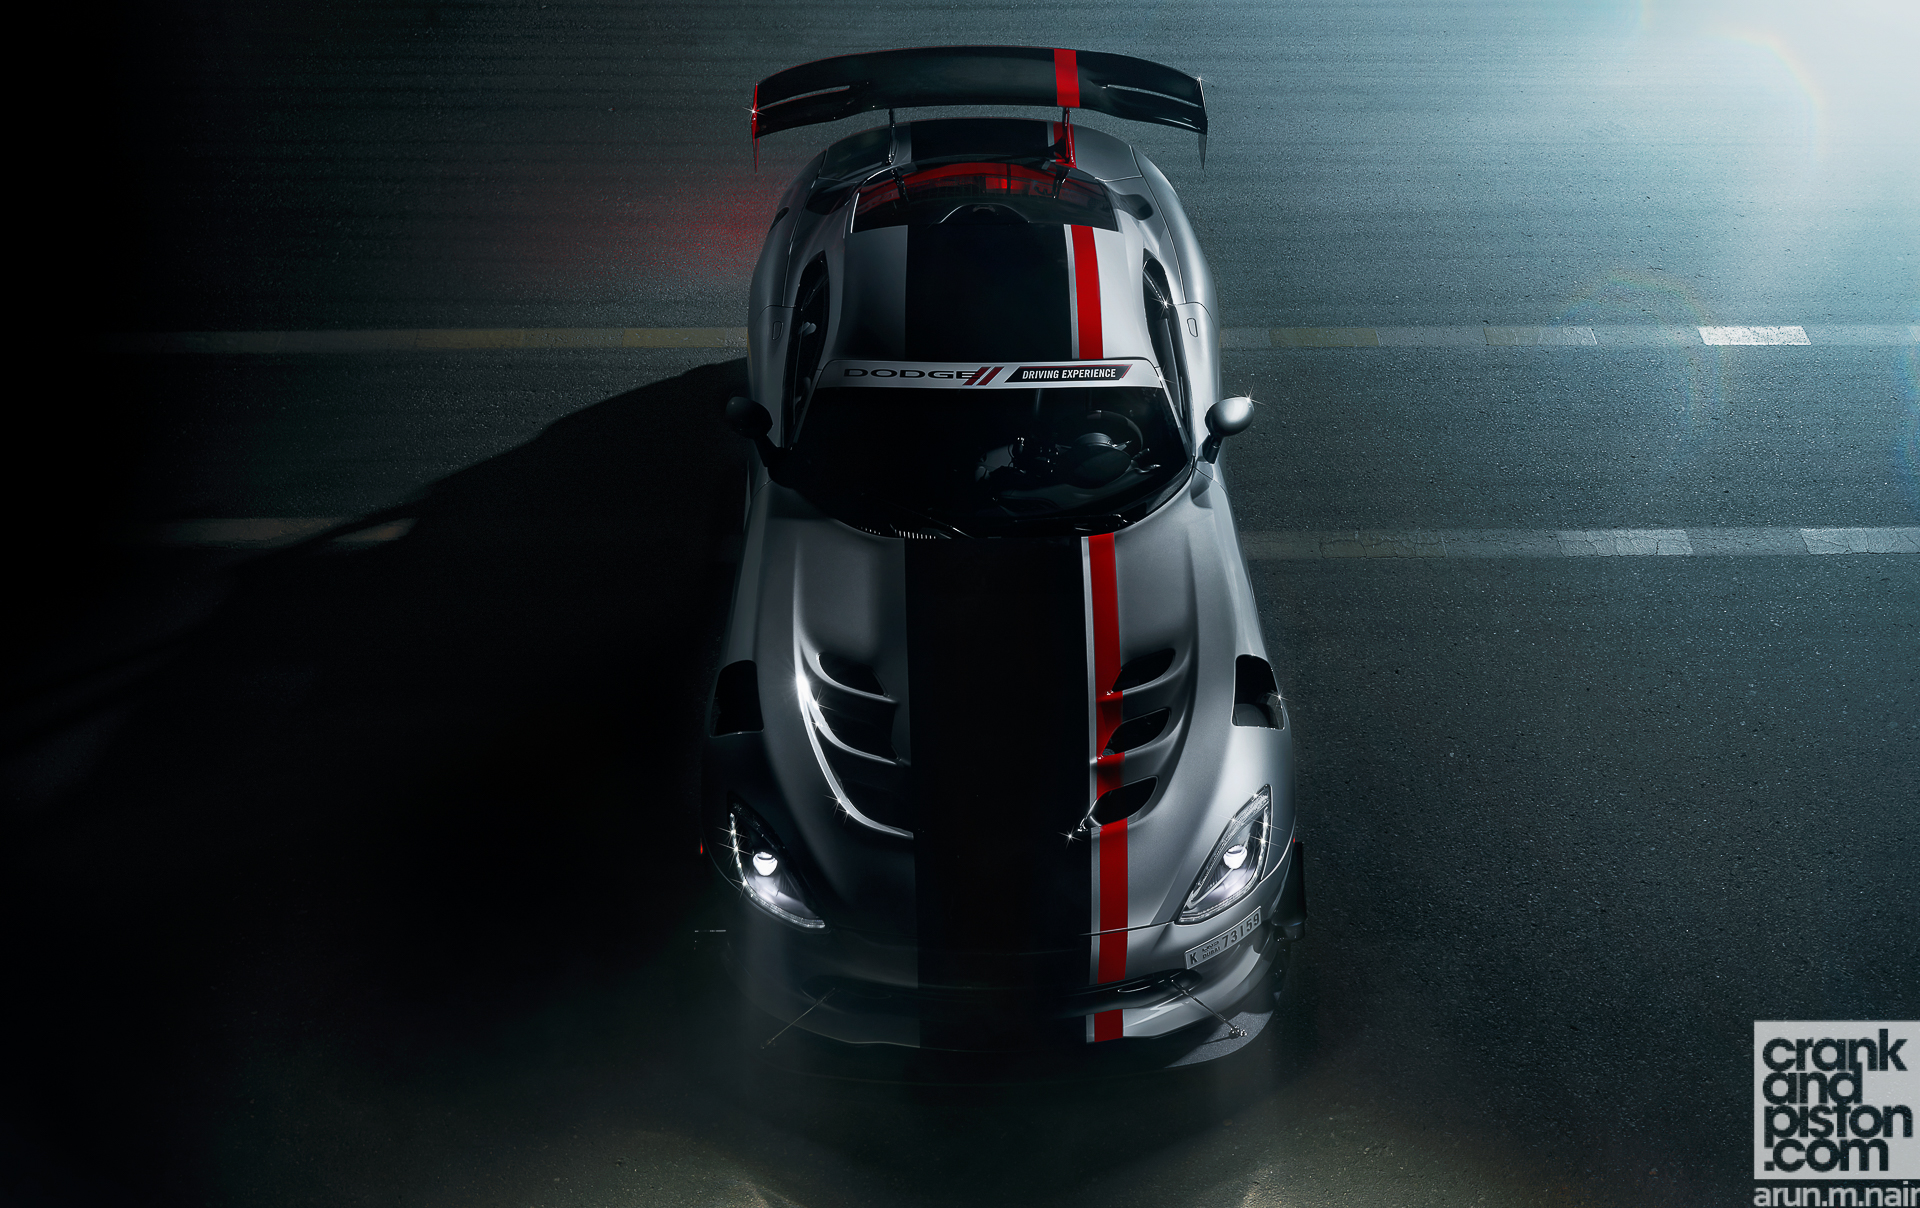 Dodge Viper Acr 2017 Specs >> On-track with the SRT Viper ACR. Set 1 - crankandpiston.com